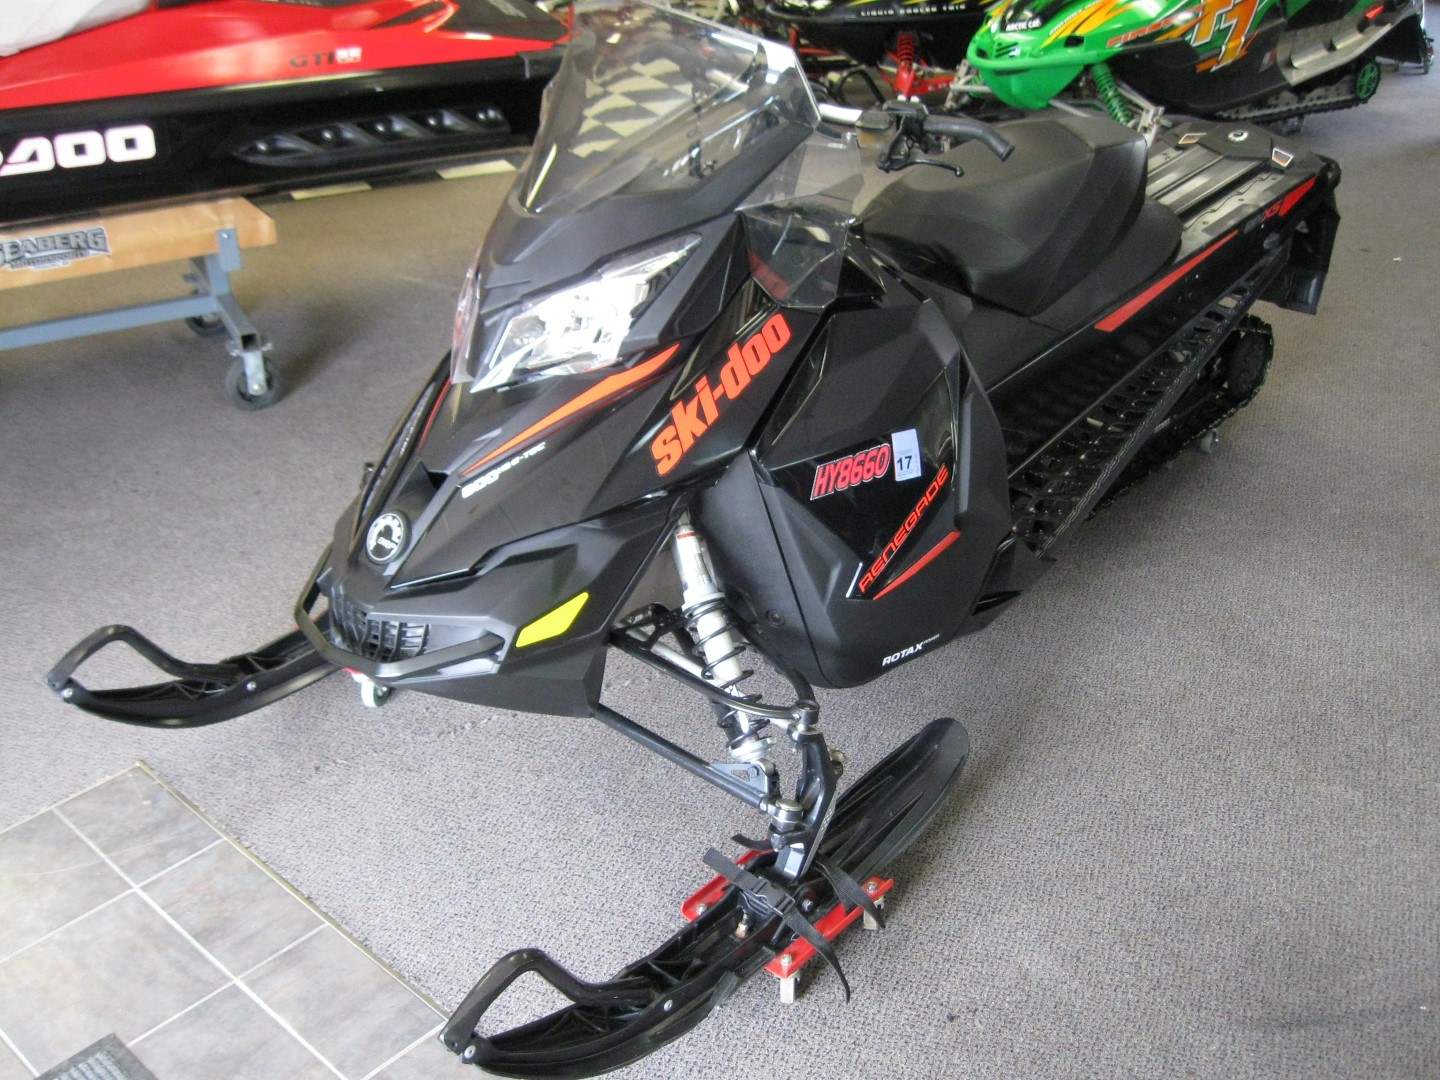 2015 Ski-Doo MXZ Renegade 600 E-Tec Snowmobile for sale eagan mn Seaberg Motorsports Crosslake MN front quarter right